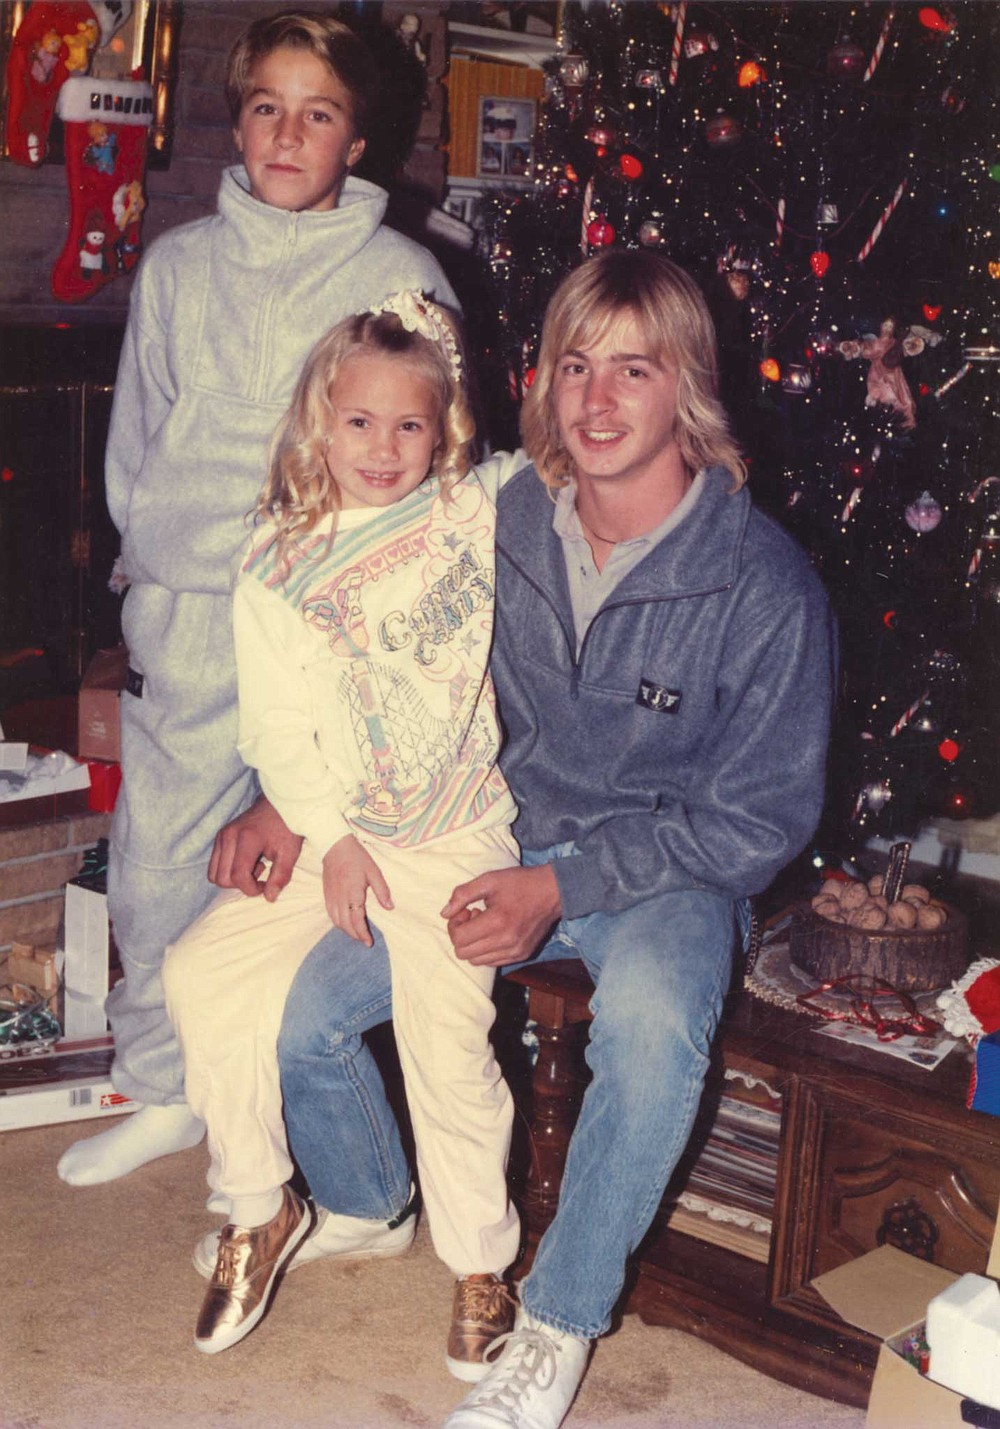 Young Kamaryn embraces Jamie during a 1980s Christmas celebration